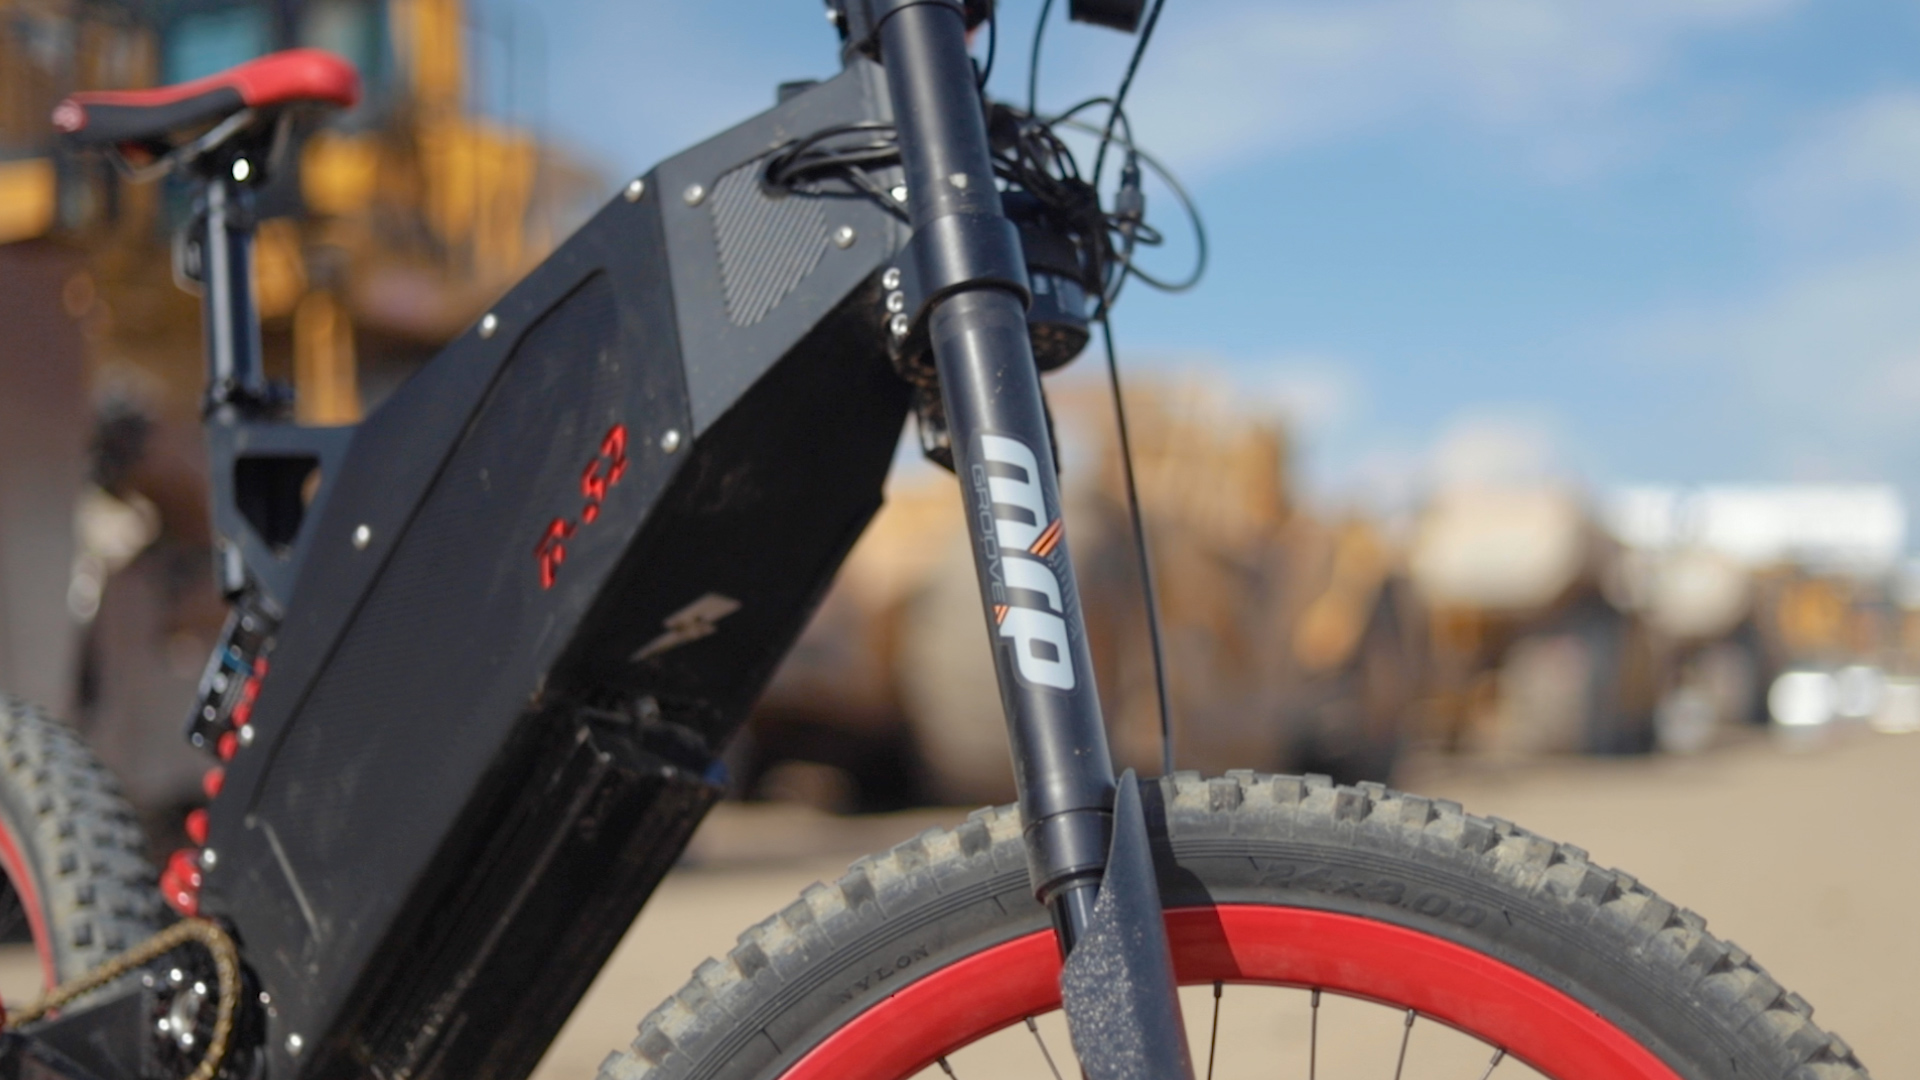 electrified-reviews-stealth-b52-bomber-electric-bike-review-mrp-groove-suspension.jpg